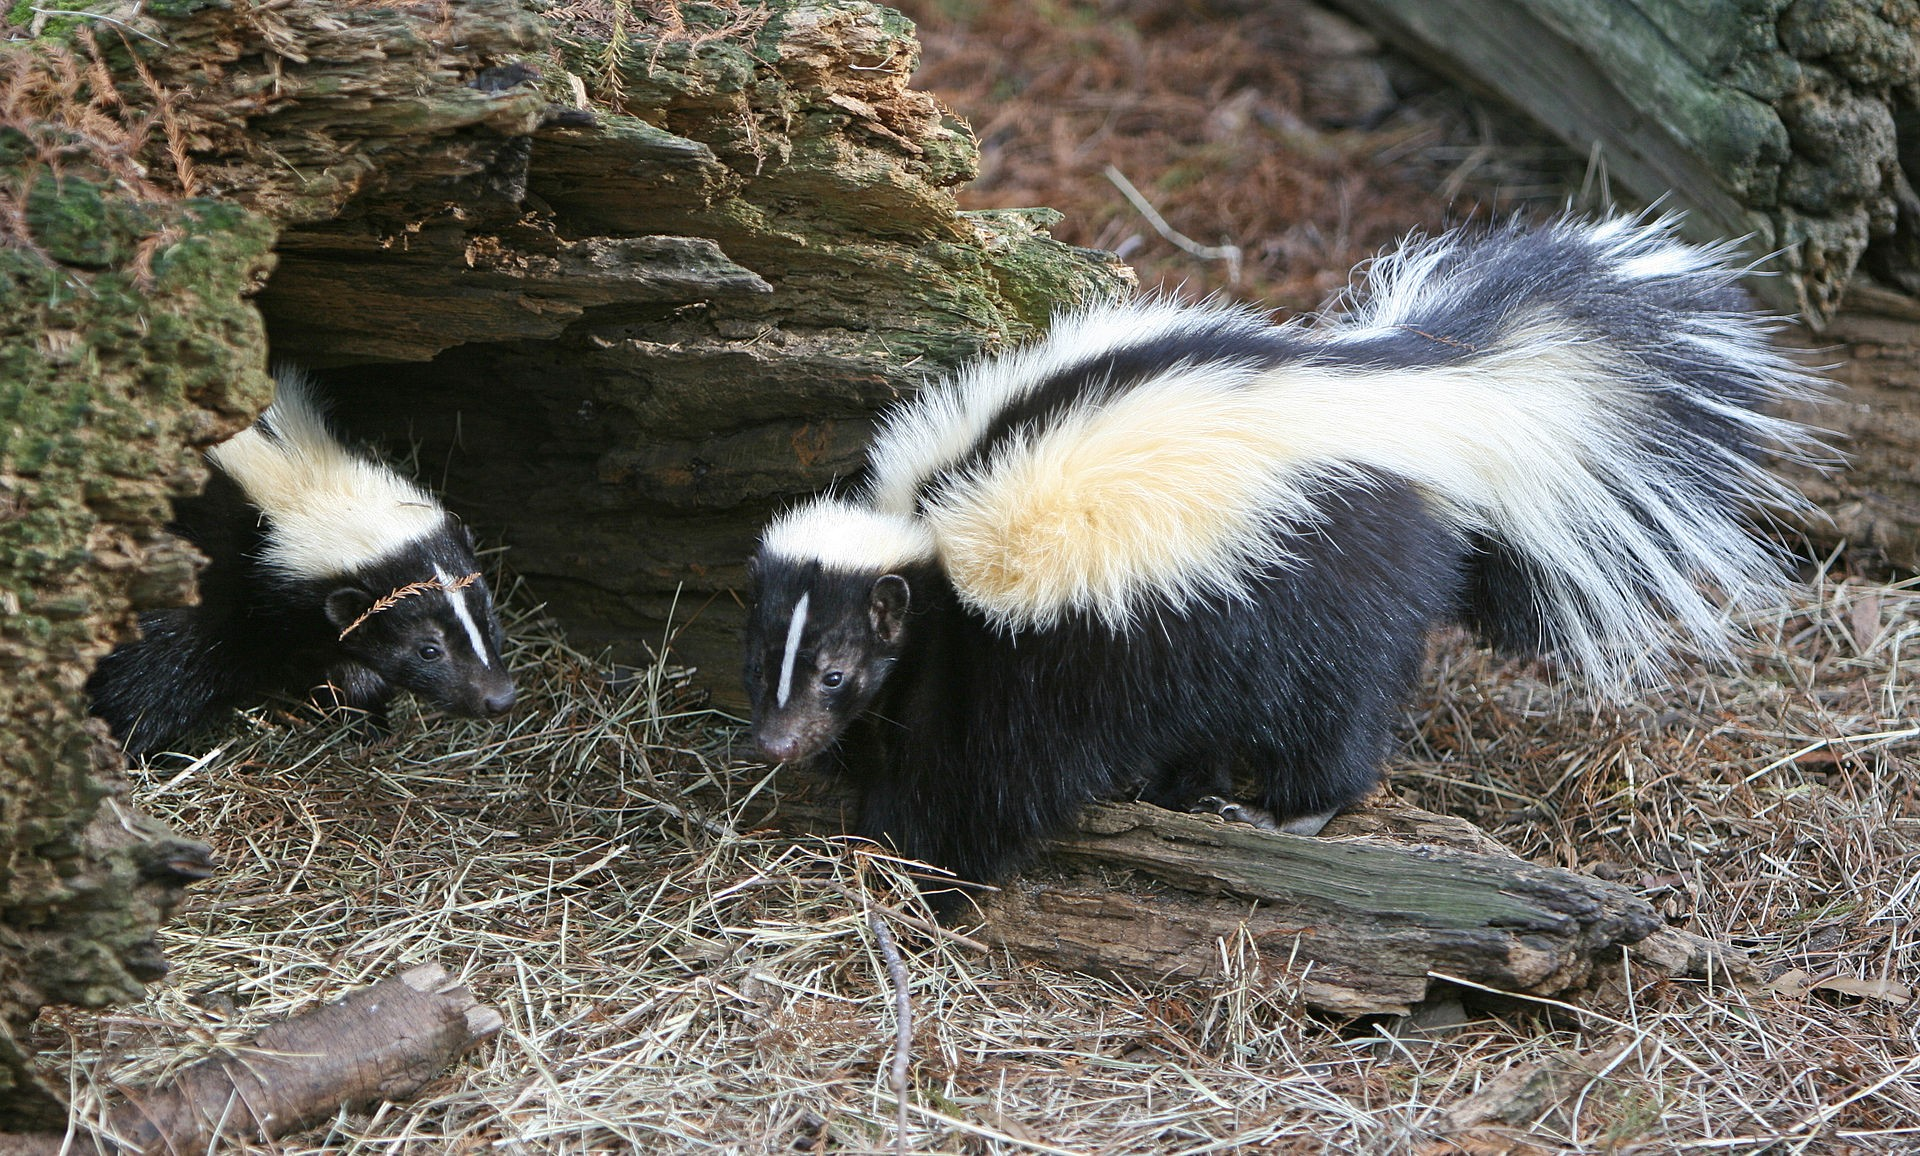 Skunks striped